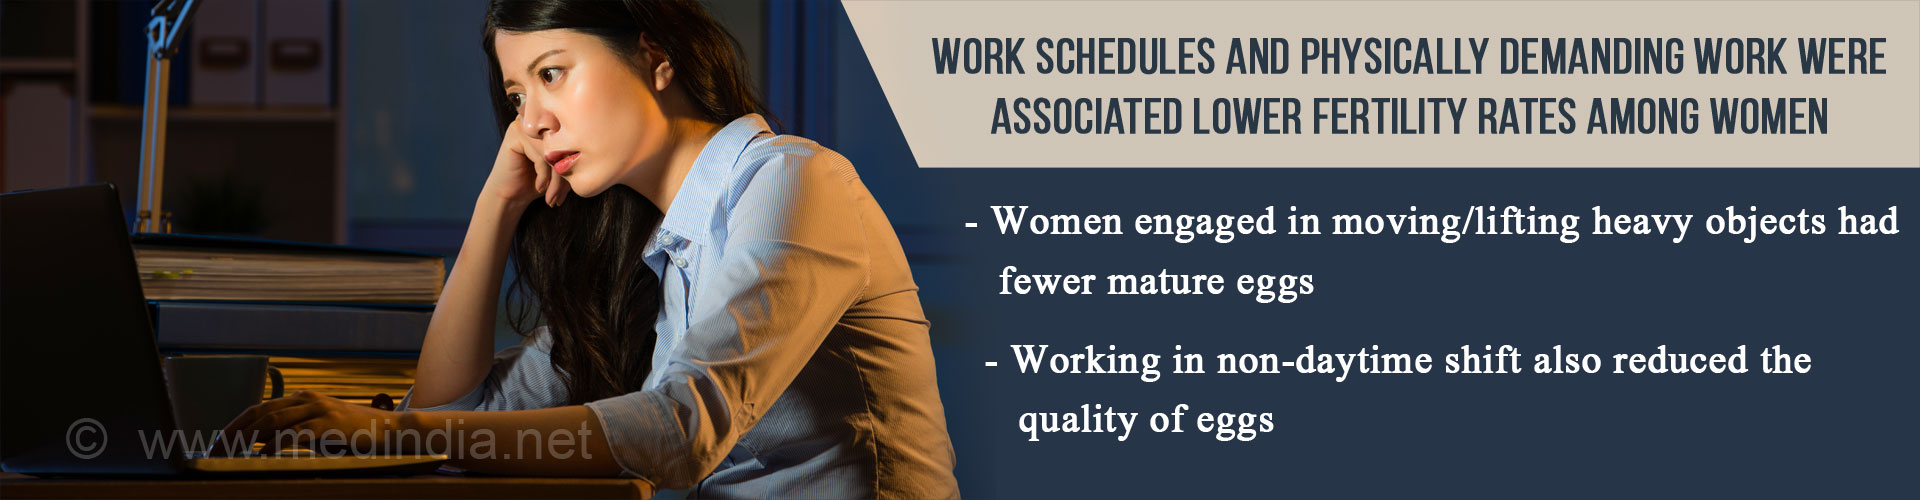 Workplace Factors That Affect Women's Ability to Conceive